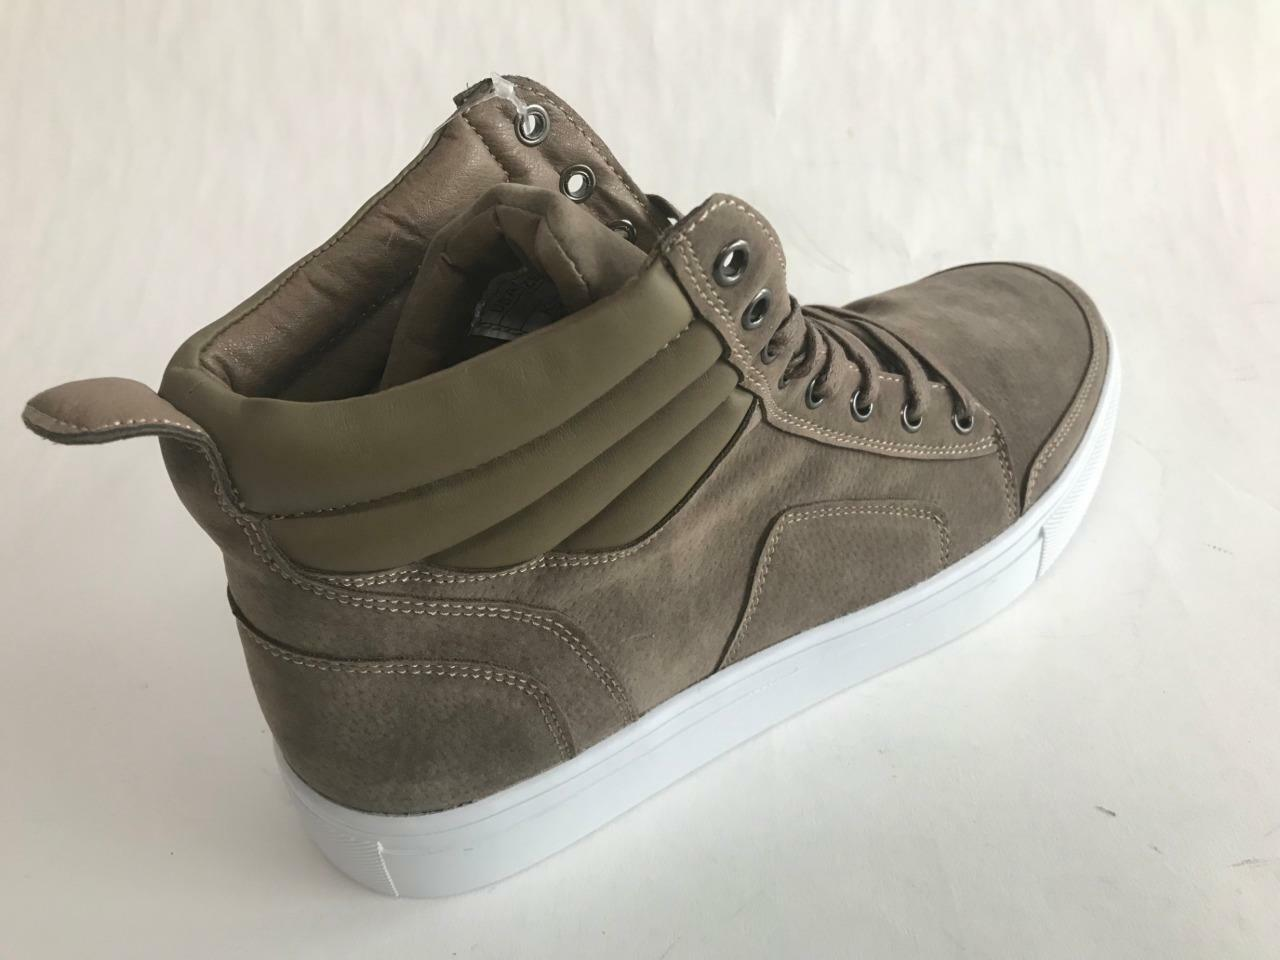 Tayno Suede Karo Fashion High Top Suede Tayno Feel Sand Sneakers 8.5,9,9.5,10.5,11,12,13 0cc484